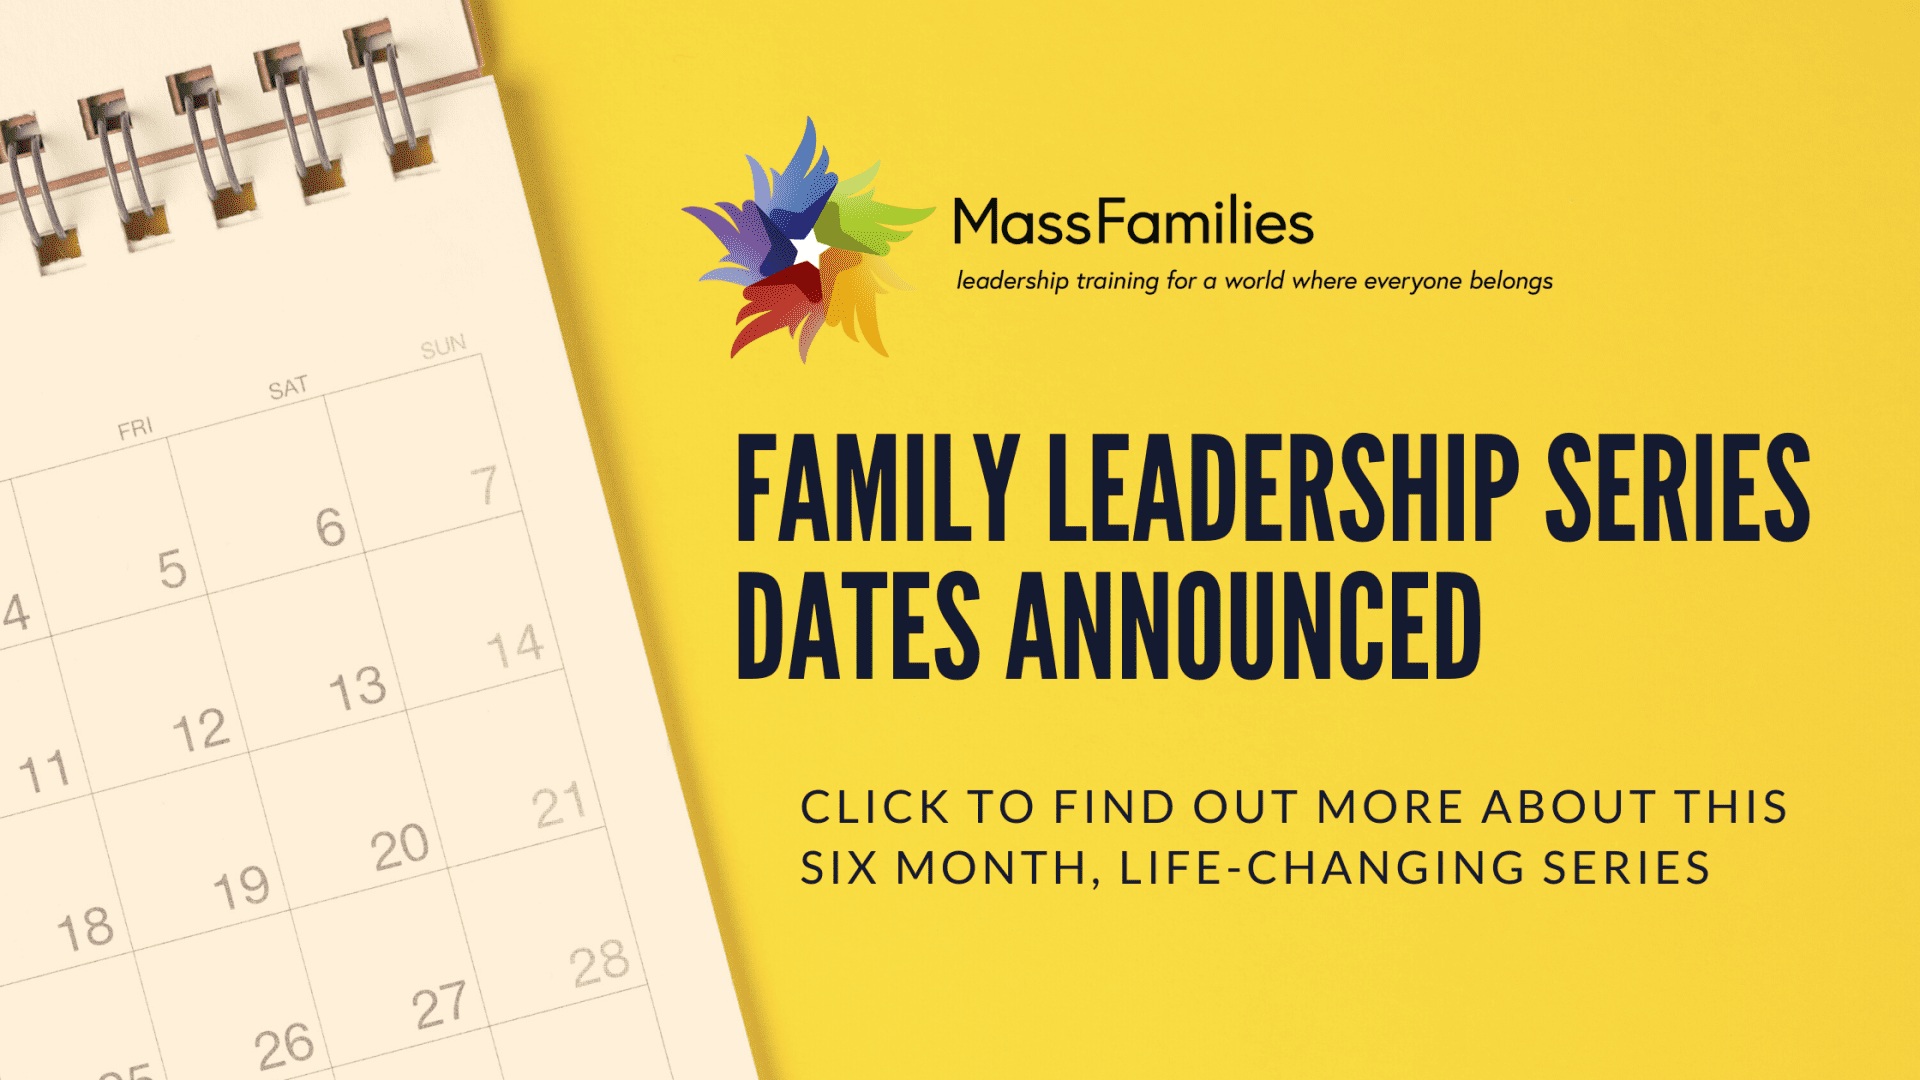 Family Leadership Series Dates Announced